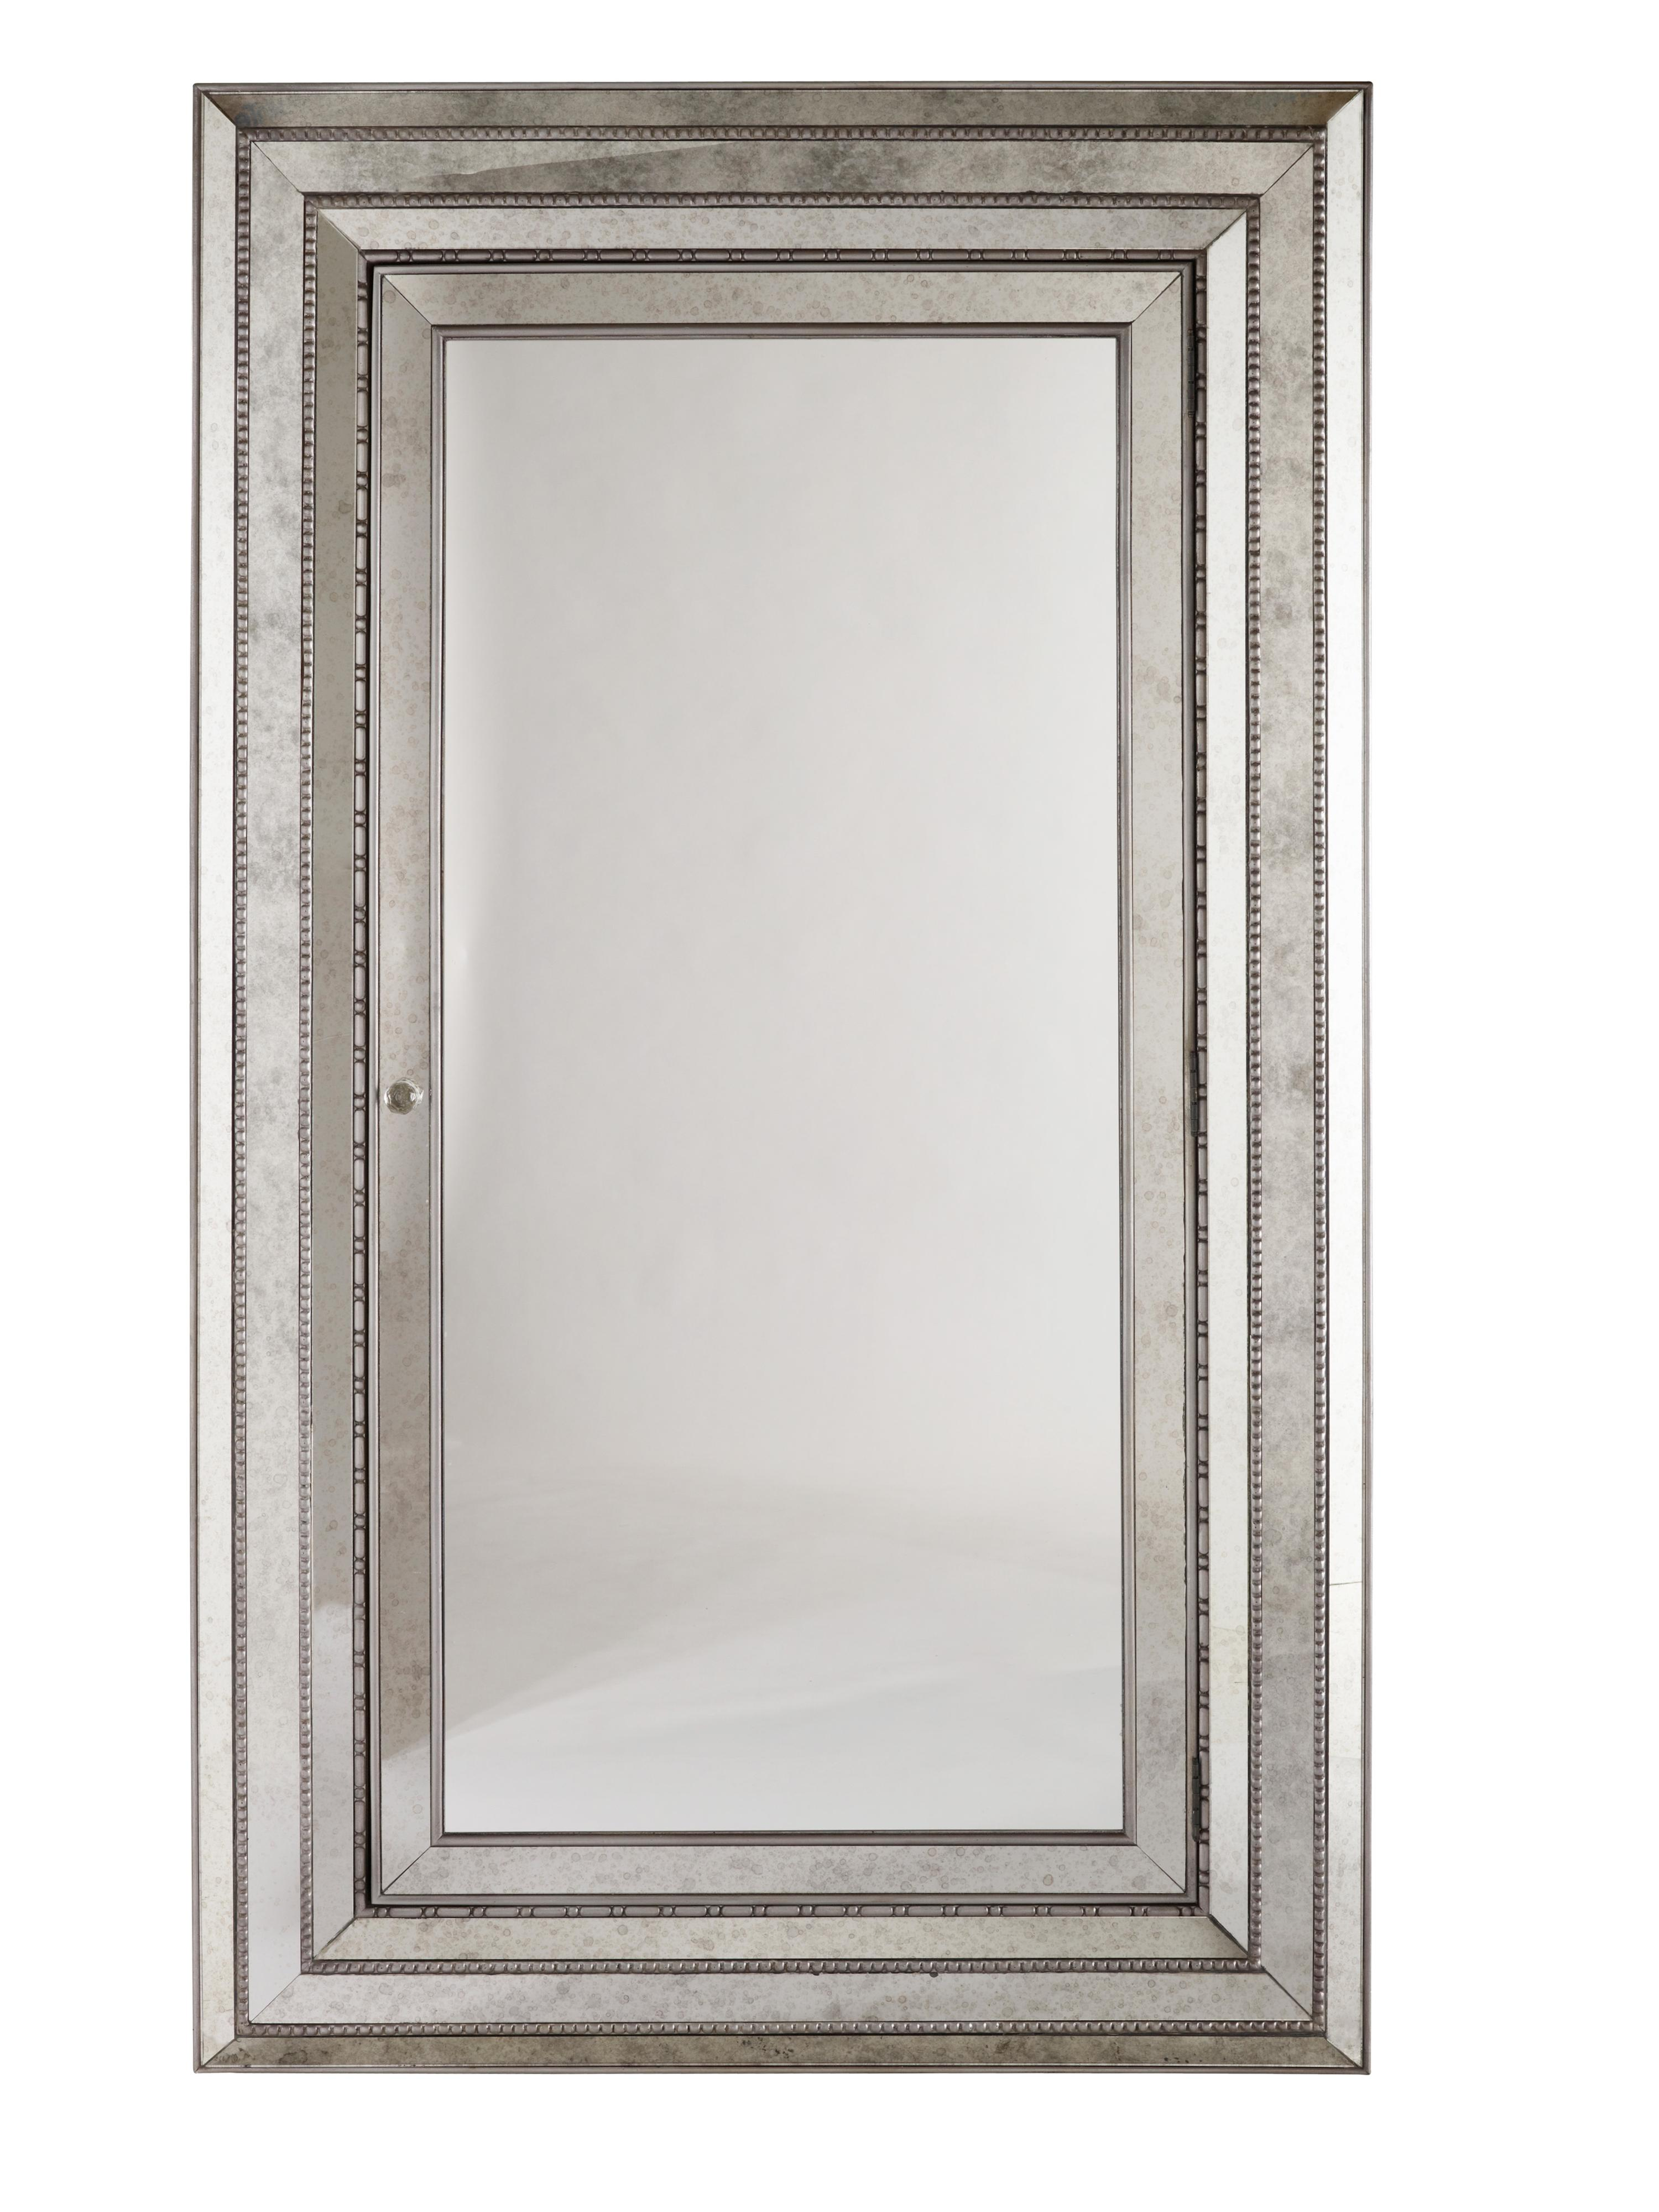 Mélange Glamour Floor Mirror by Hooker Furniture at Alison Craig Home Furnishings